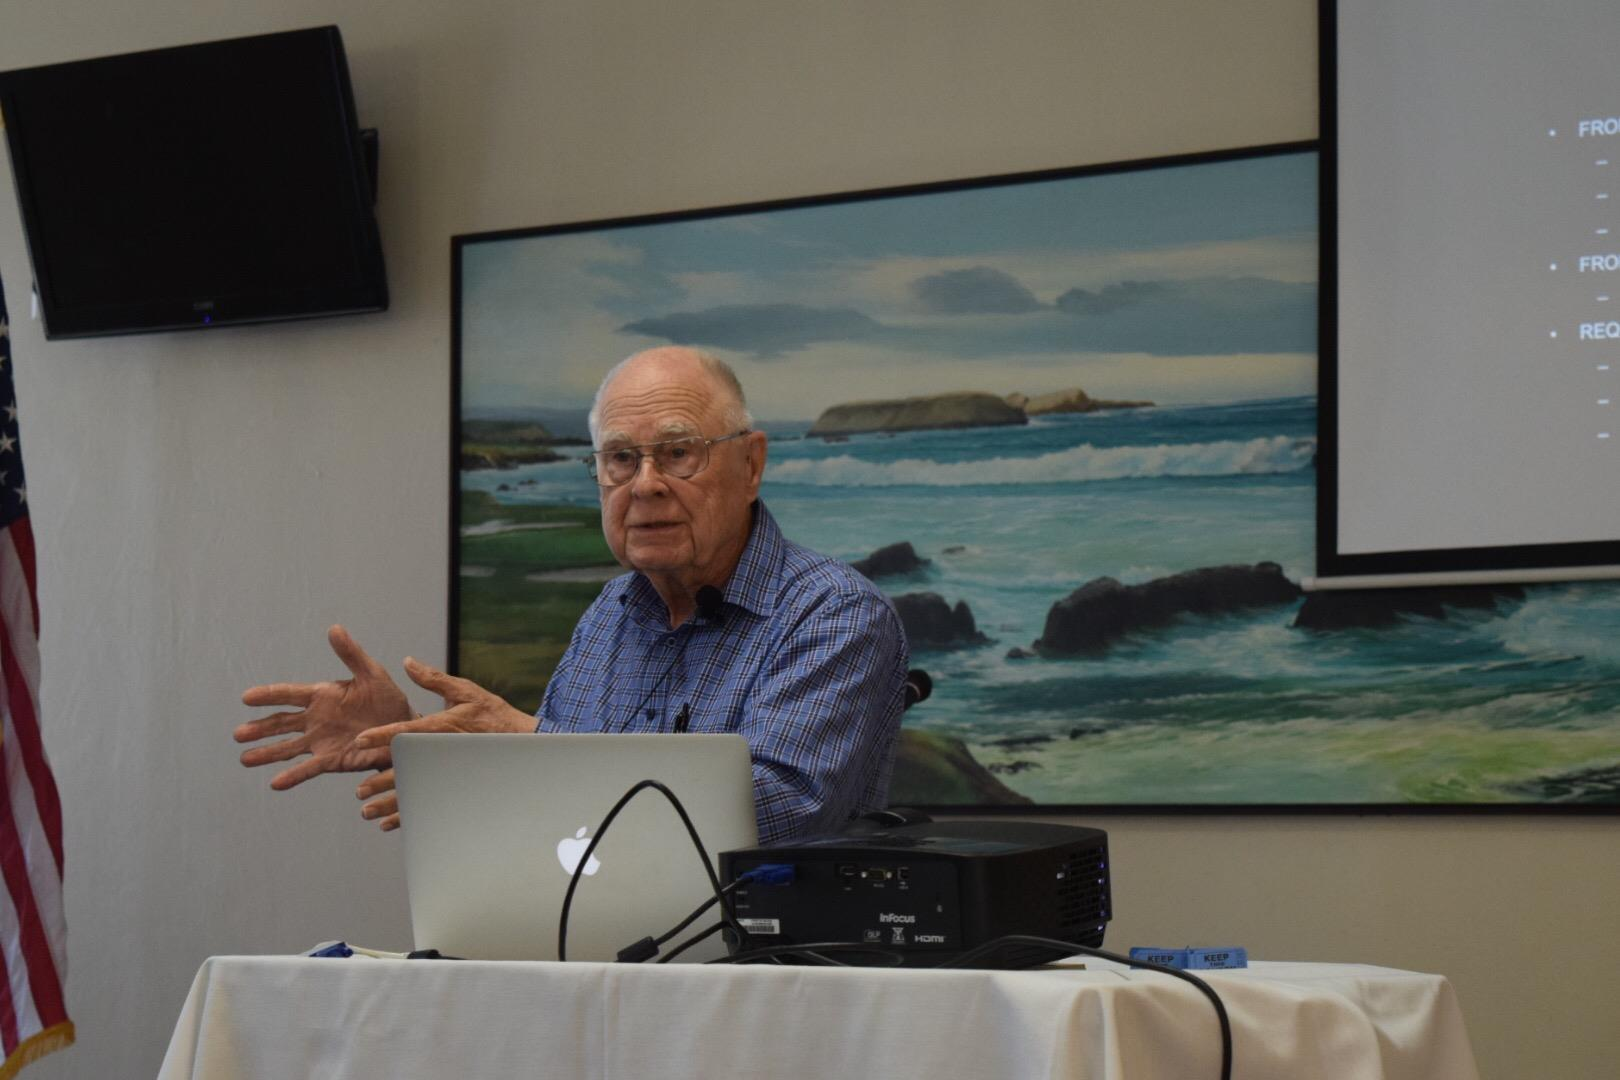 NASA Ames employee Bill Borucki talks about the results of the Kepler mission